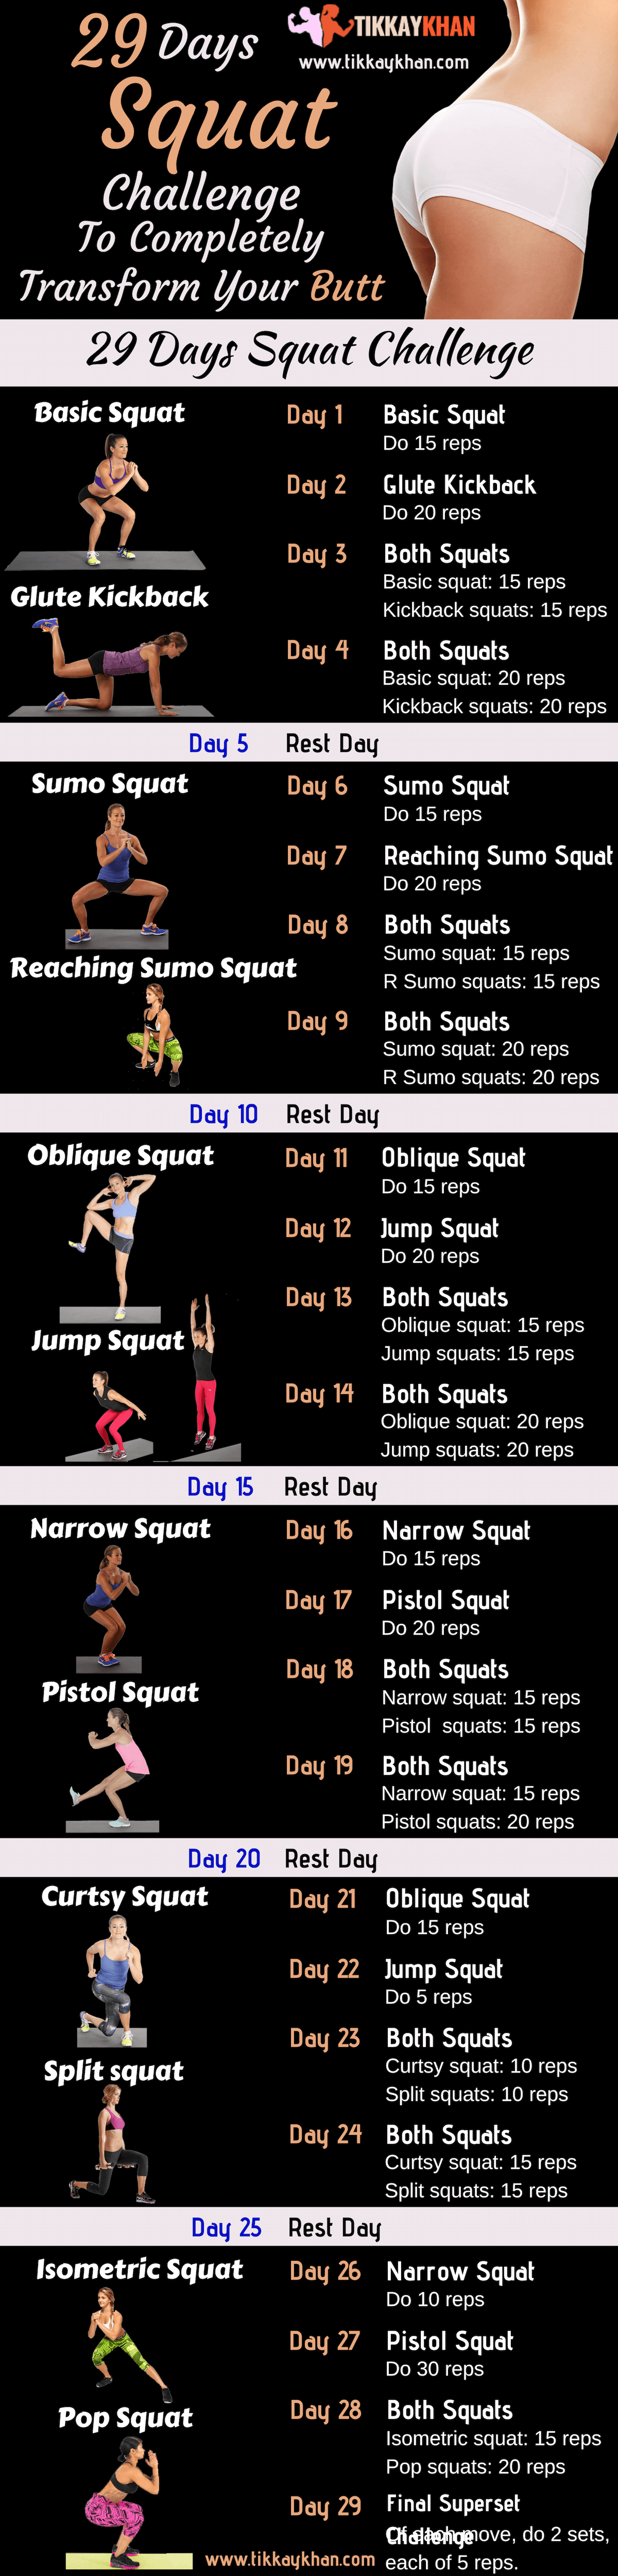 29 Day Squat Challenge Infographic